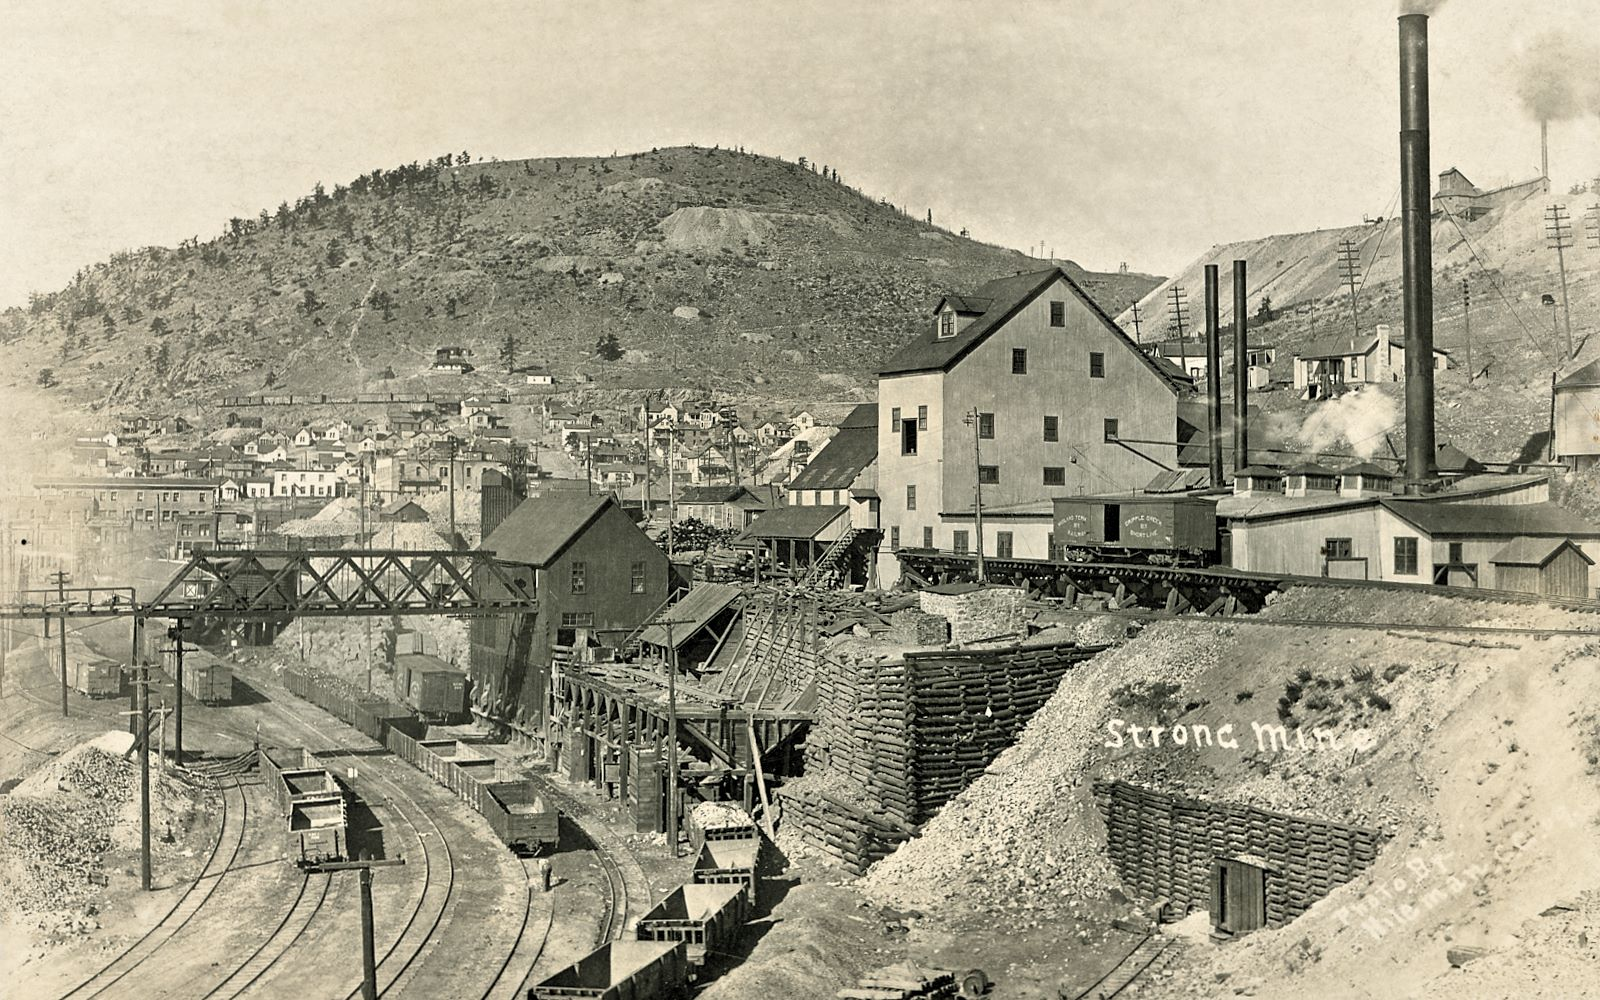 This view of the East & south side of the Strong Mine is quite a good one to tell how it looked sometime in 1909 when T.J. Hileman took the photo which was the base for this postcard view presented here. Down left is the yard of the F. & C.C. railroad, with its dual gauge tracks connected with the M.T. running passed the Ore-House of the Strong Gold Mining Company. Also, the mainline of the Victor branch of the M.T. is shown entering the scene along the right-hand side, where there is shown most of the side-spur for delivering coal to the powerplant of the Strong Mine for their operations, seen here with a single M.T, boxcar (no. 211) parked on the trestle, while the mainline where passenger trains were running is seen this side of that trestle, dropping downgrade to reach the Depot not seen in this view due to being behind the Strong Mine Ore-house.    The Ore-House also has an open-air Ore-Bin type of structure to the east, where Gondola & Hopper type of railroad cars was run under to collect dump materials to be used for railroad work I assume. Also shown is the big truss bridge coming out of the Strong Mine Ore-House, extending across the F. & C.C. yard unto another smaller bridge and taking it to a rock-house outside this view which delivered dump ore to Short Line cars to be used as ballast, fill-mass and similar along the lines, from what I have understood it as.    Just left of the single boxcar at the Coal-room part of the Strong mine, out on the crib-wall part left of the M.T. mainline is seen a small stone structure which Sanborn Fire Insurance Maps for Victor 1908 (sheet 0) say is the Powder Thawing House.